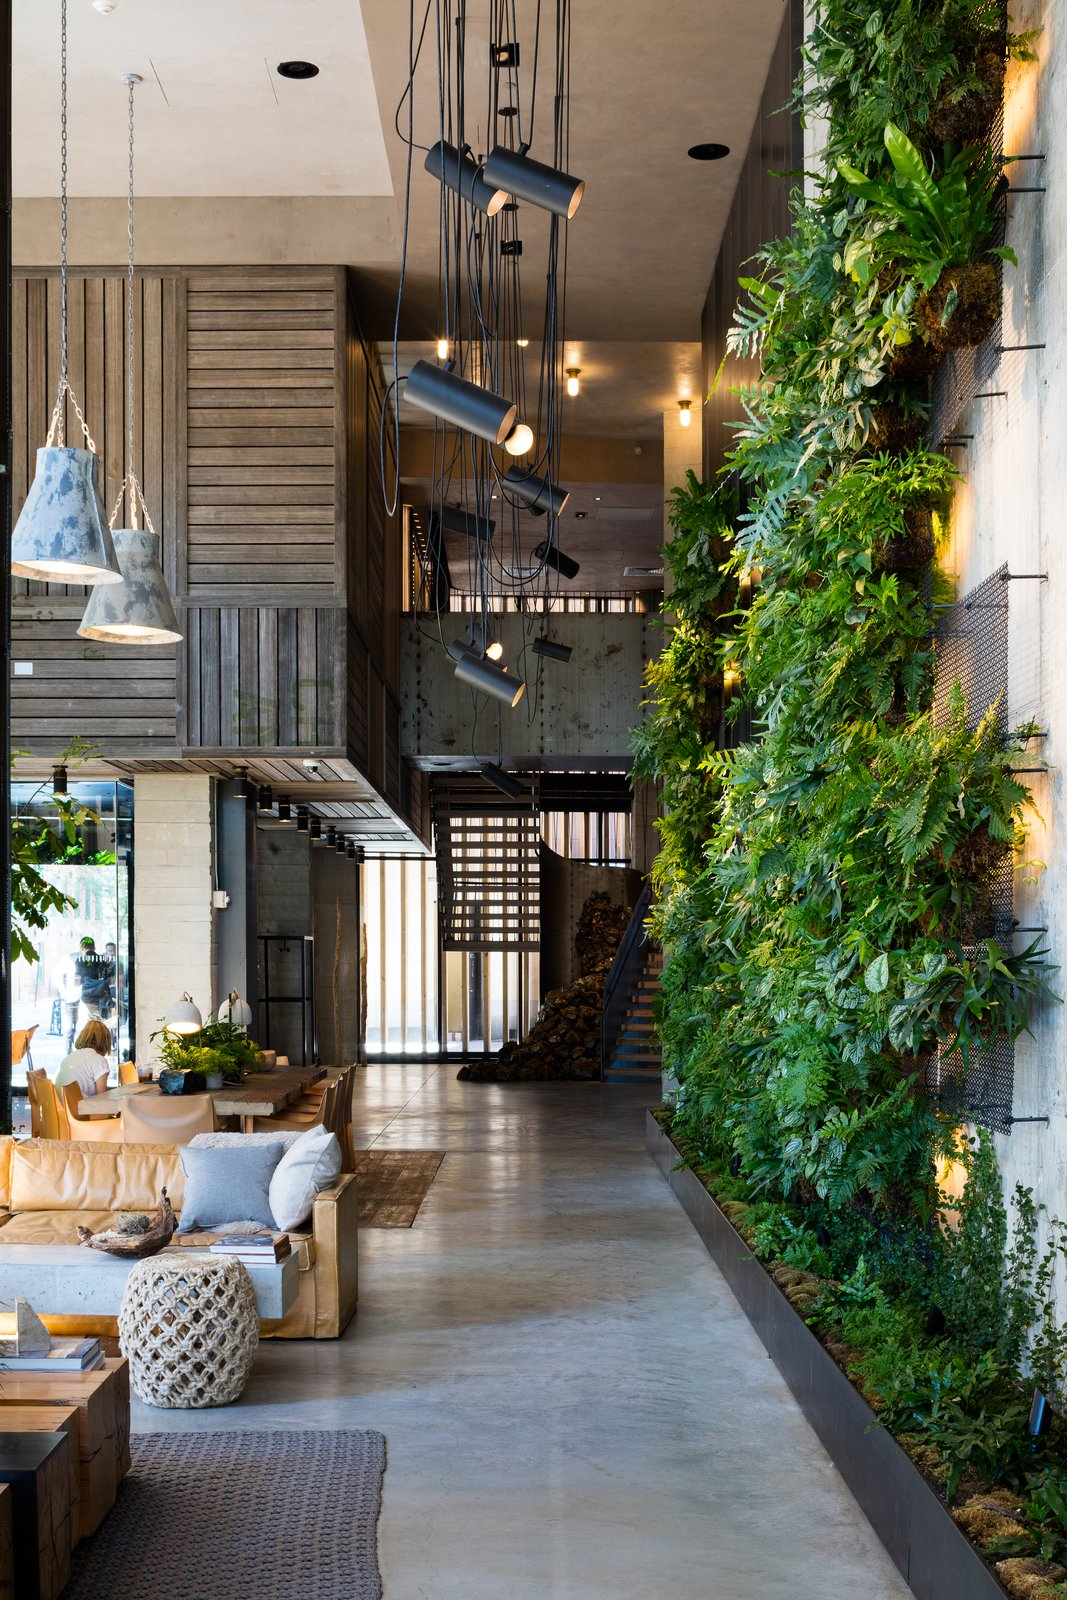 Living Room, Accent Lighting, Console Tables, Sofa, Pendant Lighting, Ceiling Lighting, and Concrete Floor  Photo 5 of 7 in Check Out This Brooklyn Hotel's Dramatic Living Wall Installation